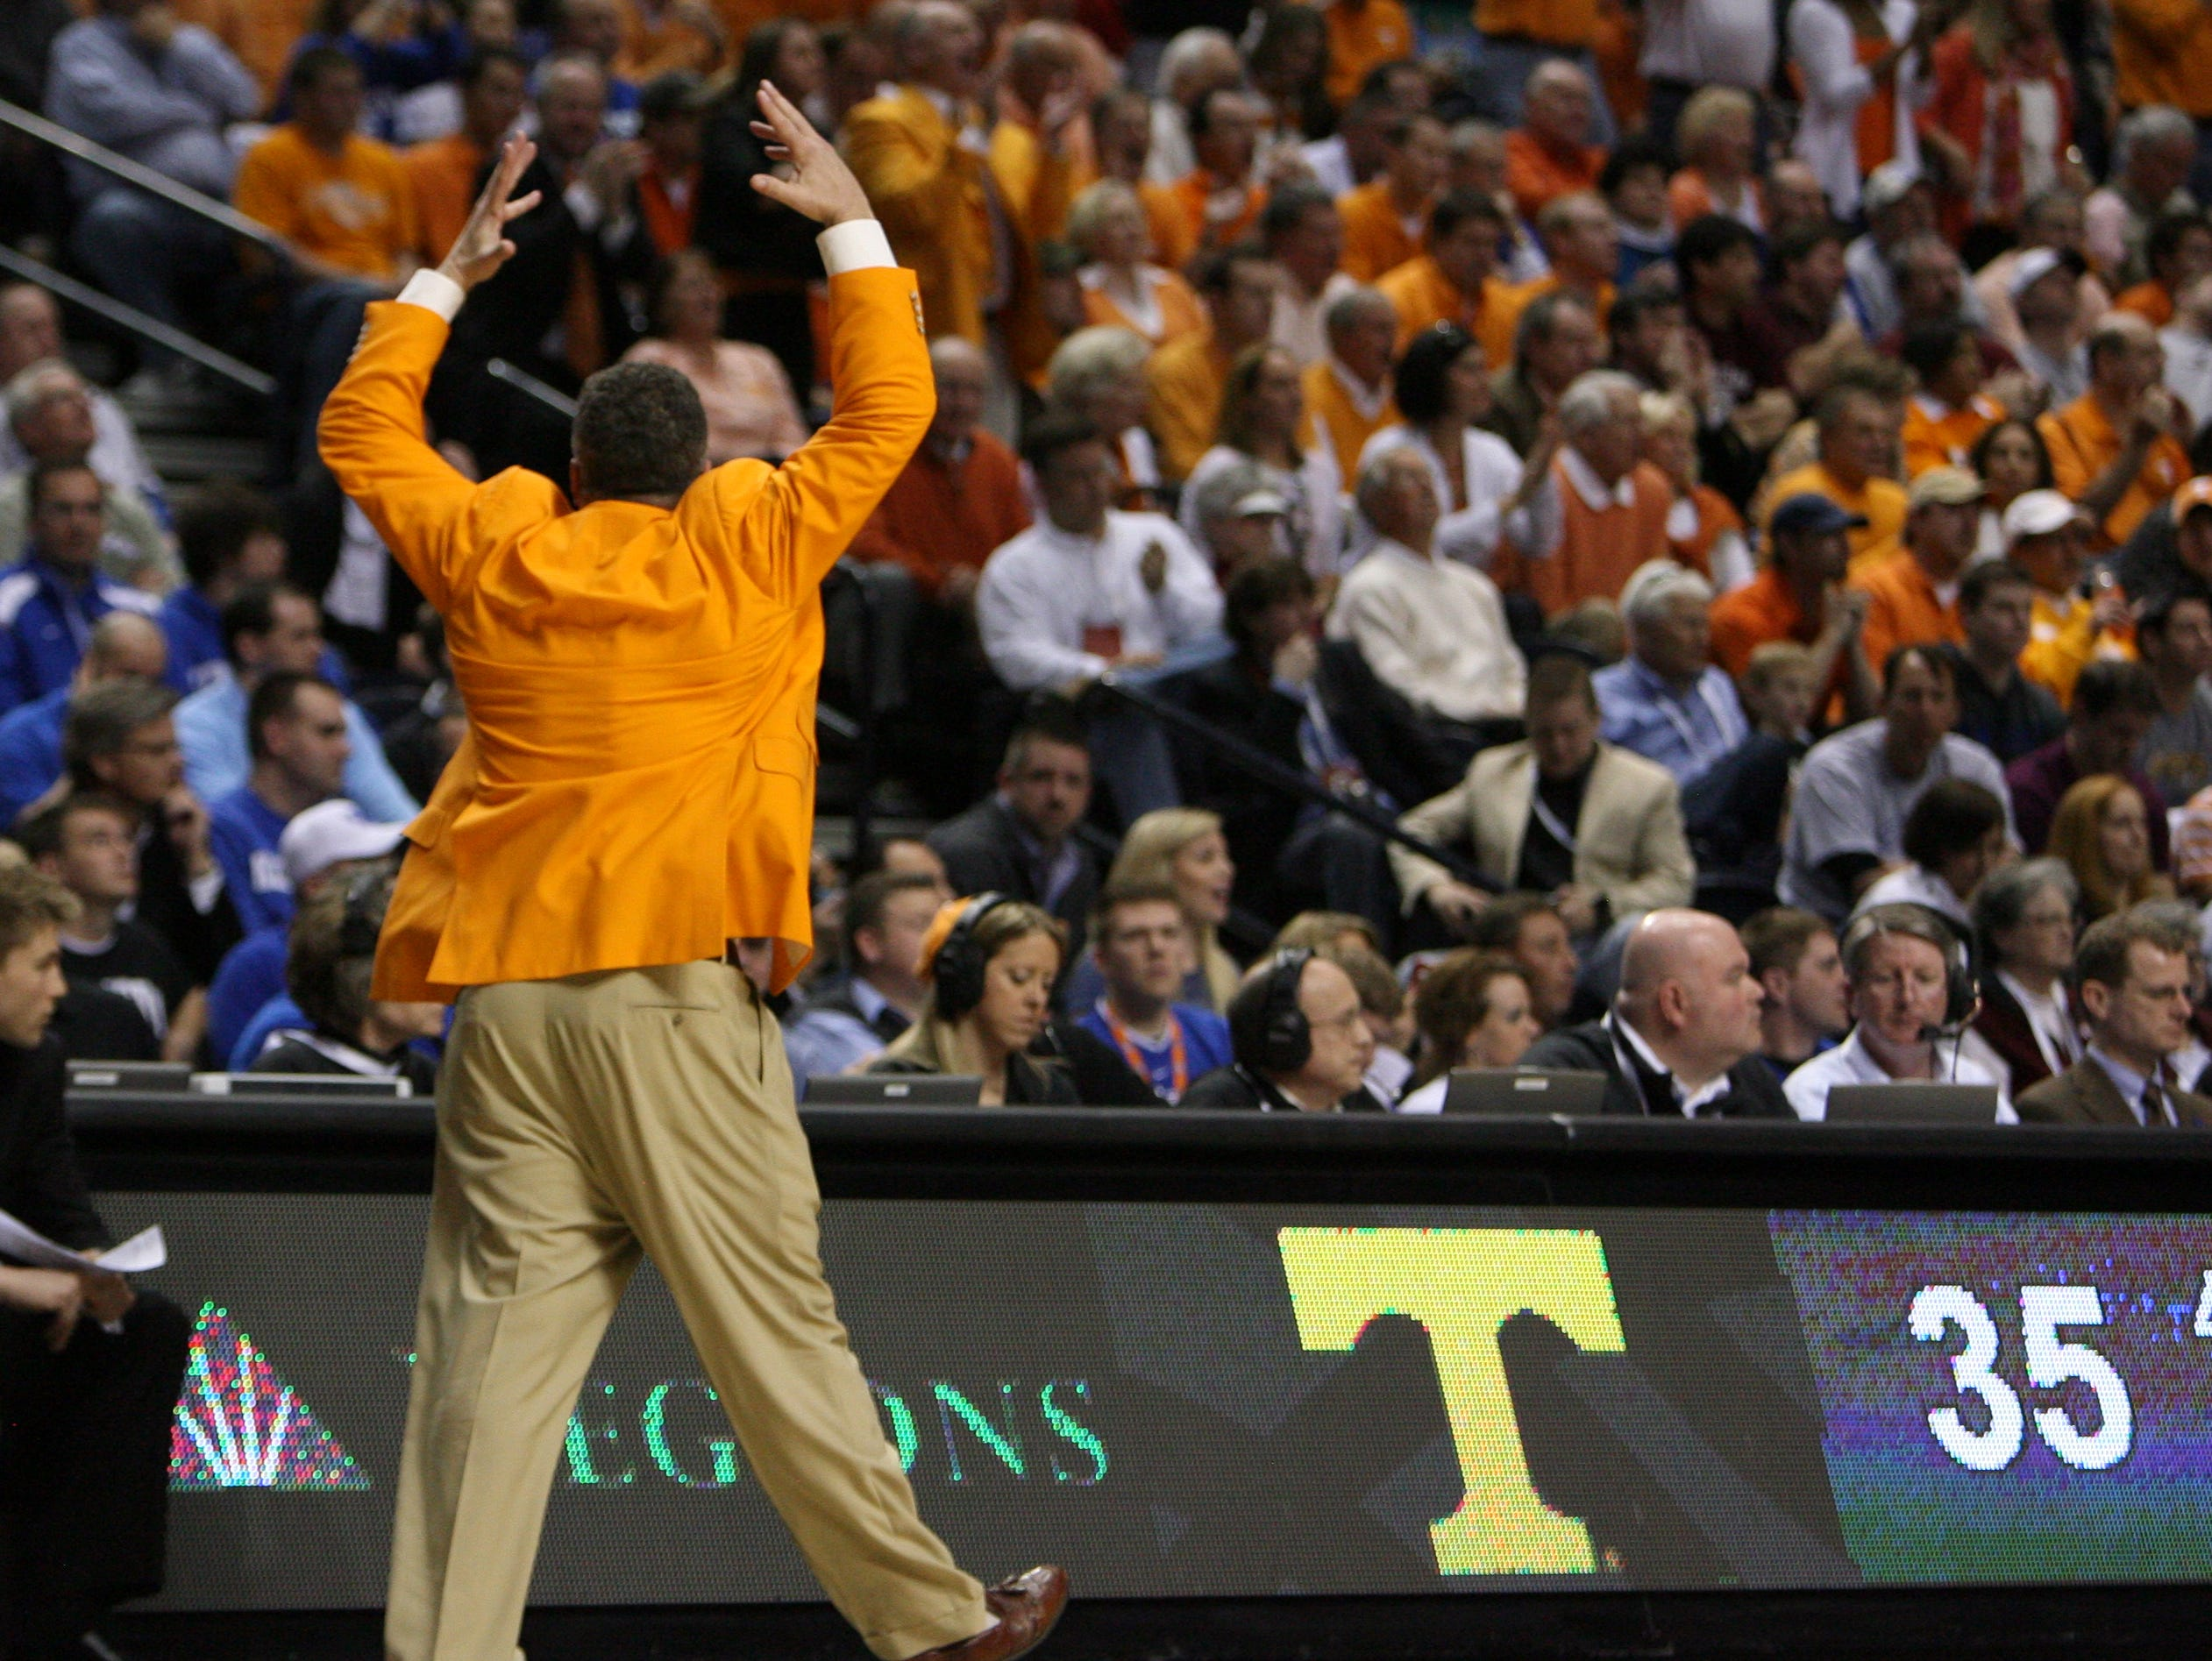 Head coach Bruce Pearl tries to rouse an outnumbered Tennessee fan base during game against Kentucky at the SEC Men's Basketball Tournament at Bridgestone Arena in Nashville Saturday, Mar. 13, 2010.